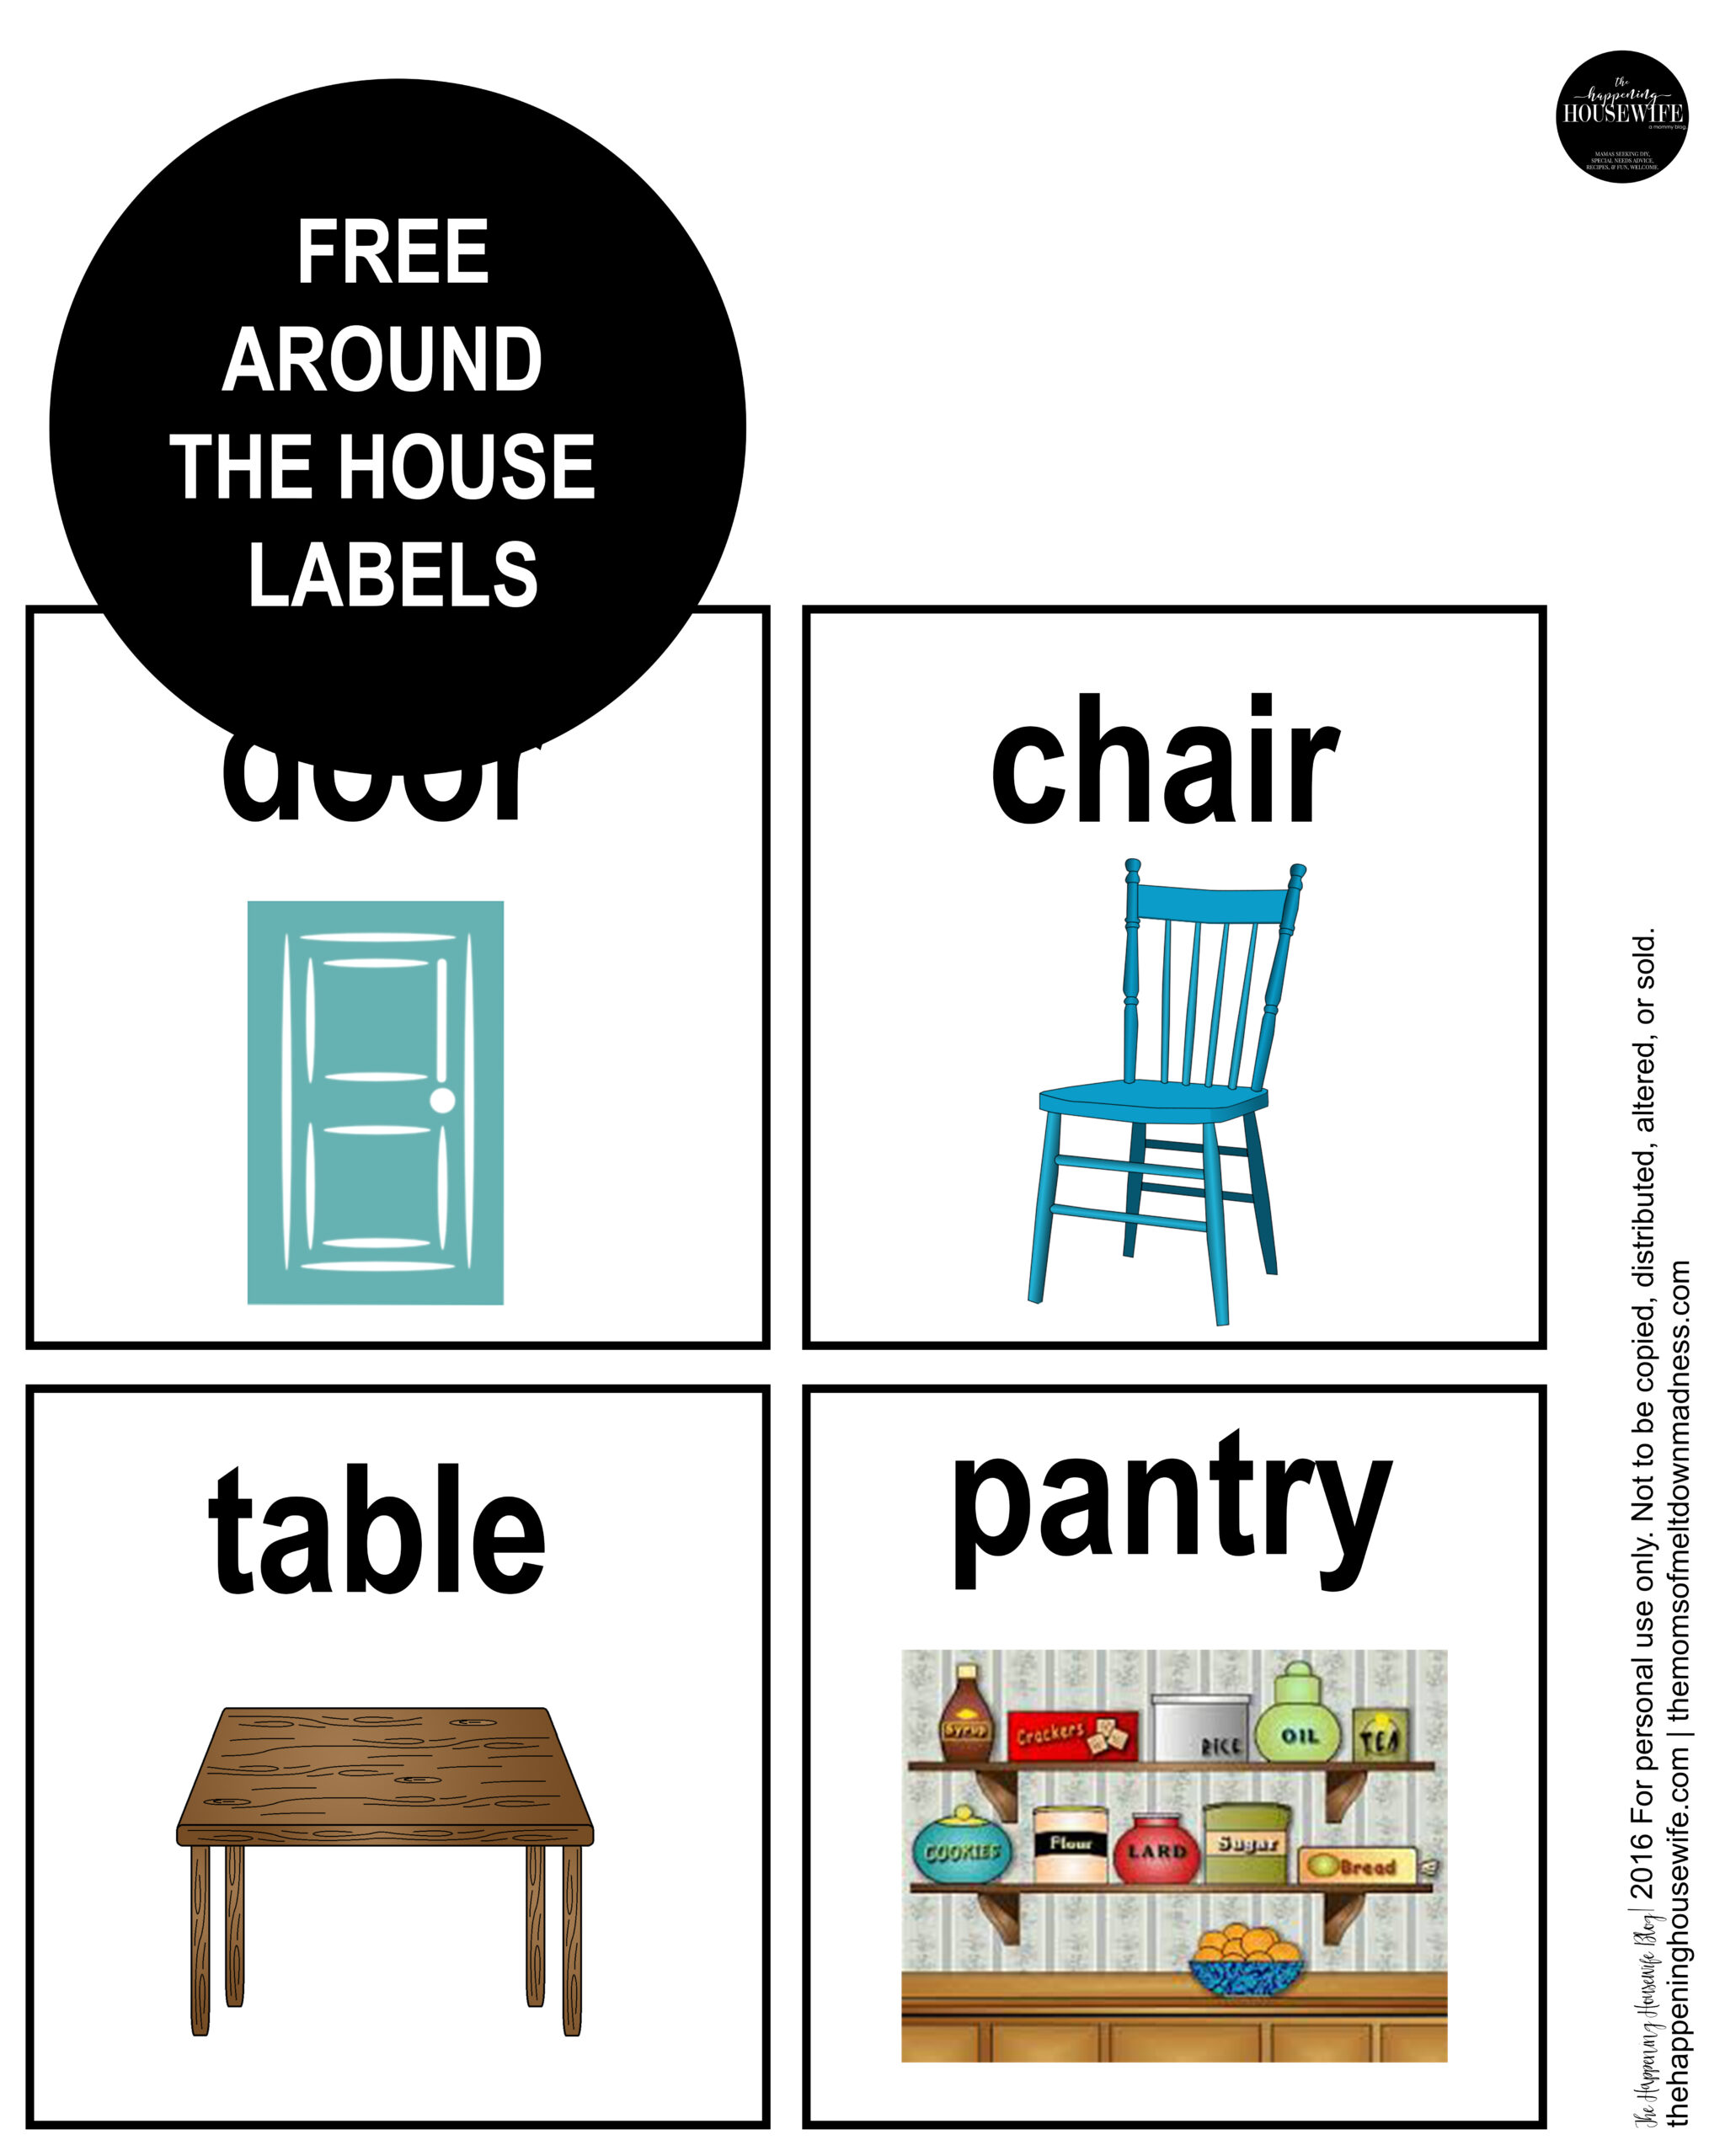 Around the house labels.jpg